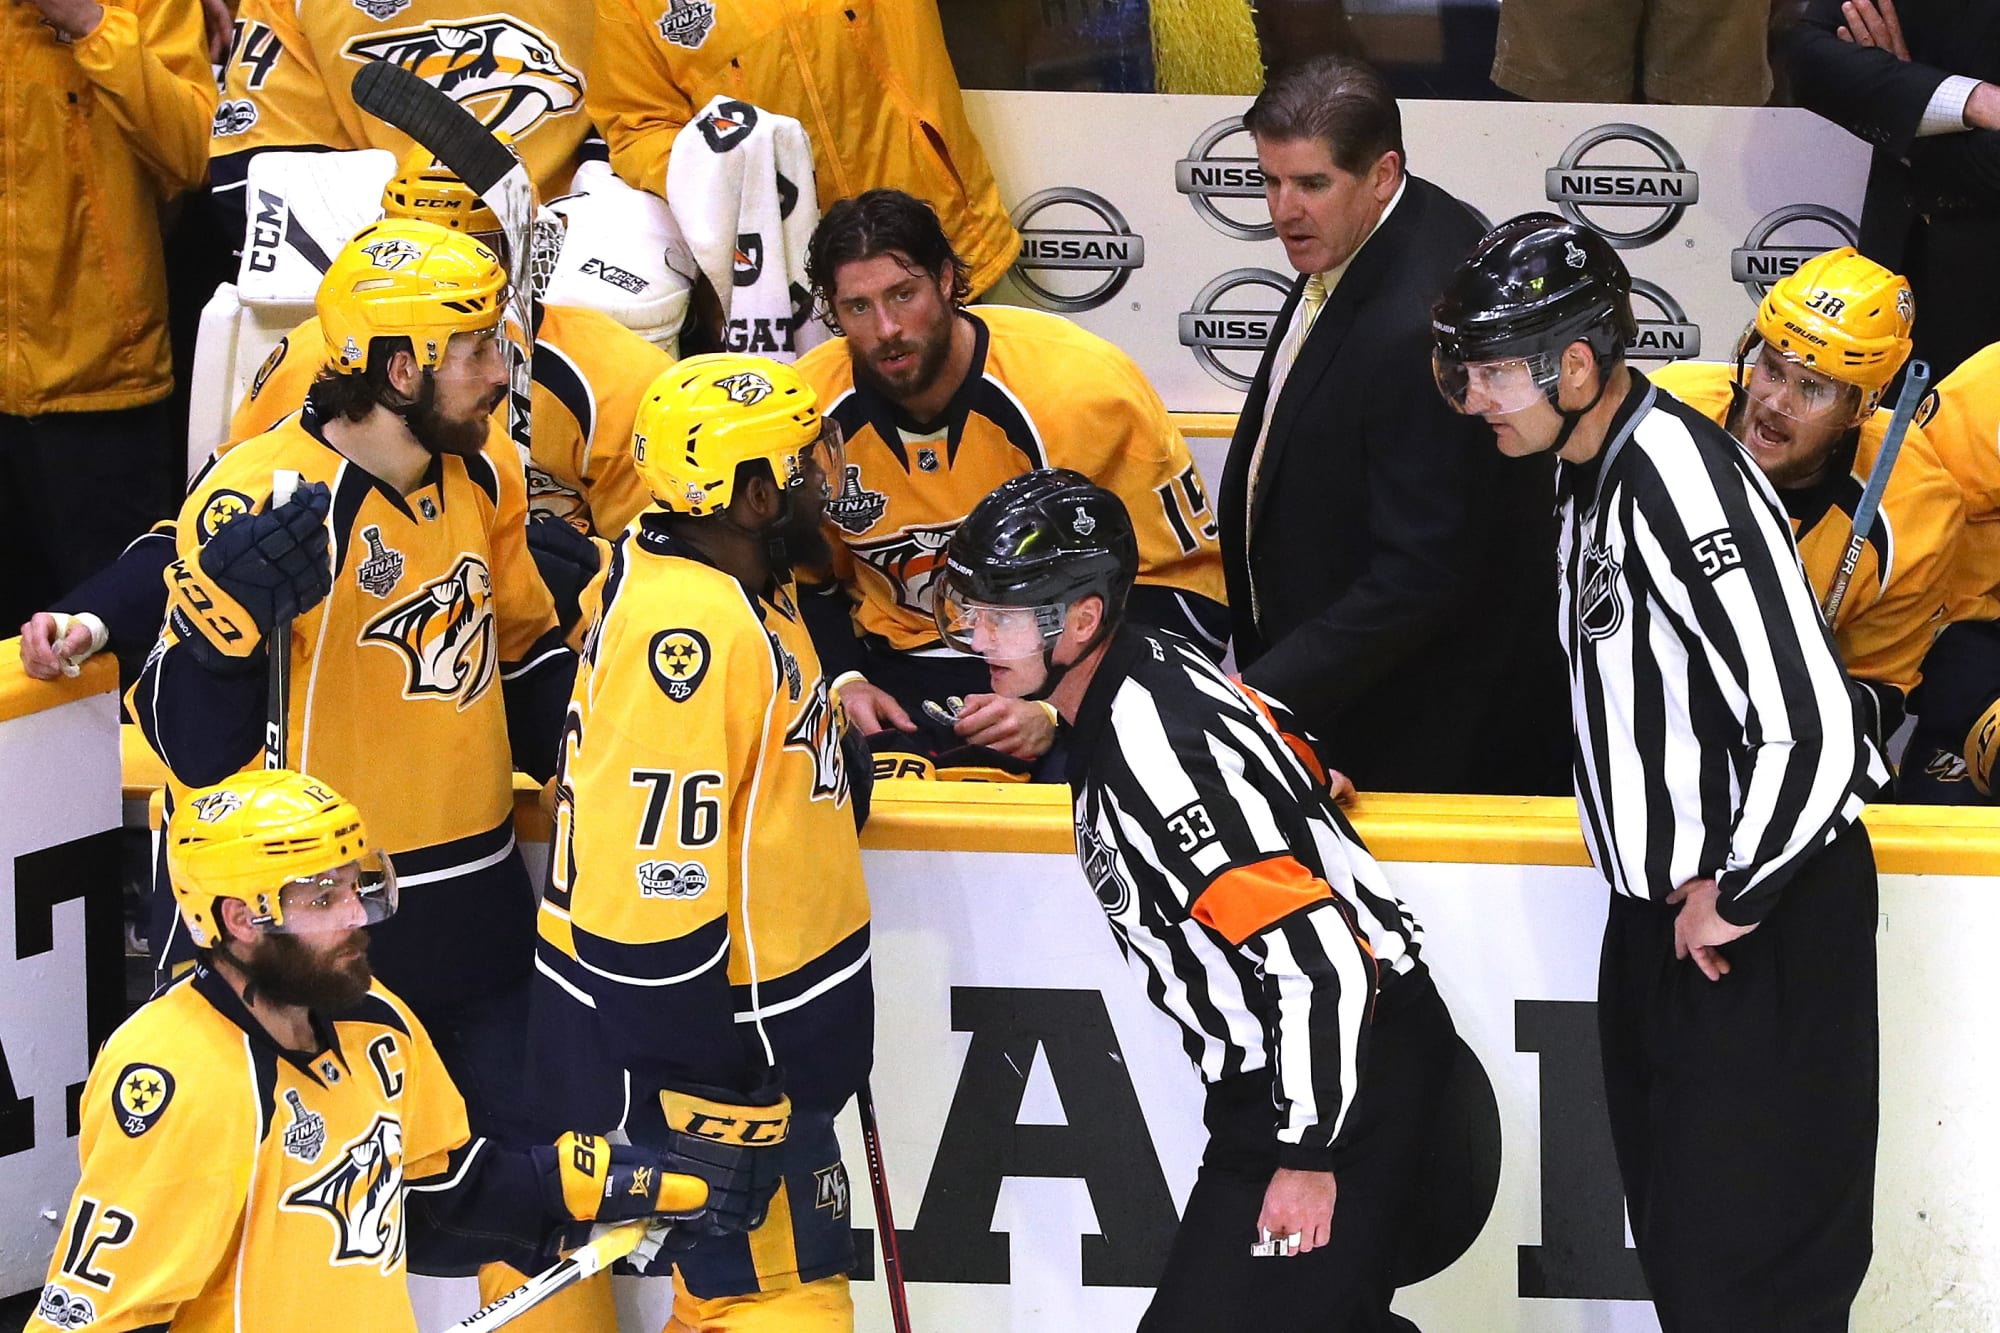 Nashville Predators: Comparing This Team to 2016-17 Stanley Cup Team